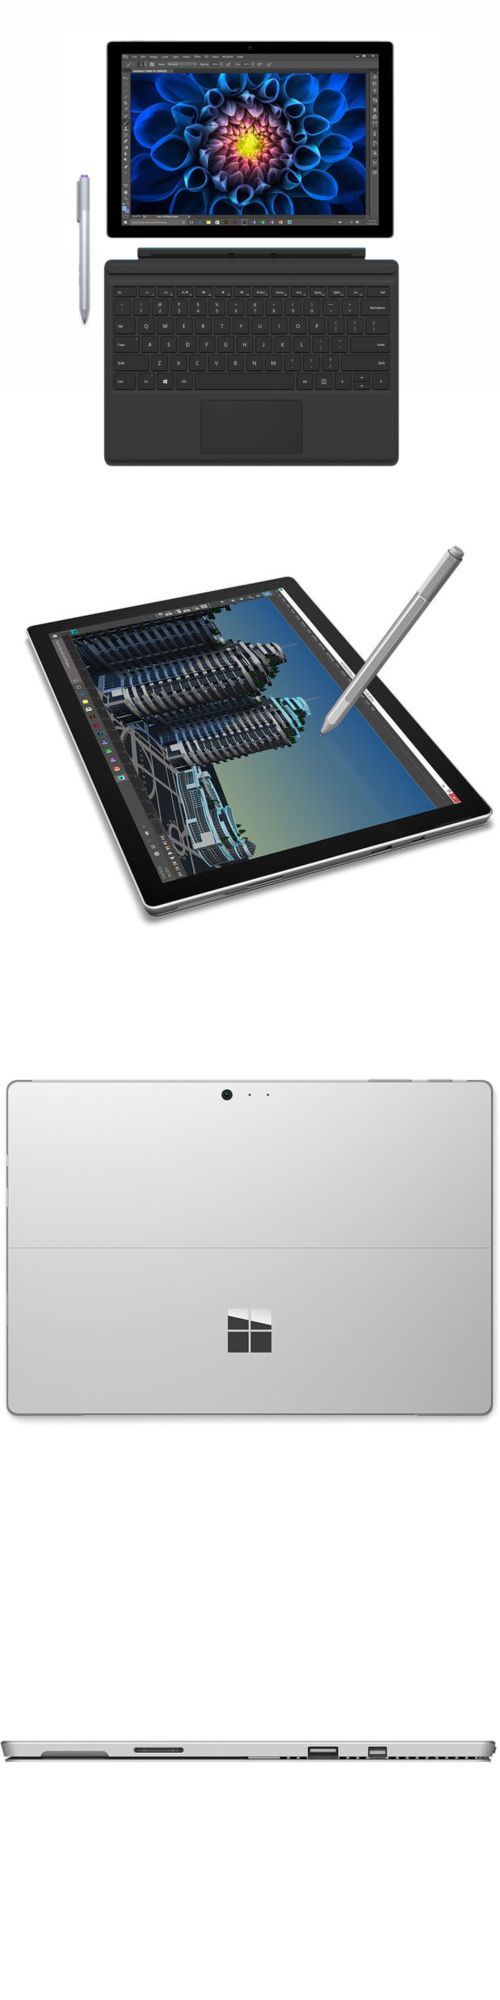 Computers Tablets Networking: Microsoft Surface Pro 4 256Gb 16Gb I7e 12.3 Tablet + Type Cover Bundle Th2-00001 -> BUY IT NOW ONLY: $1379.99 on eBay!